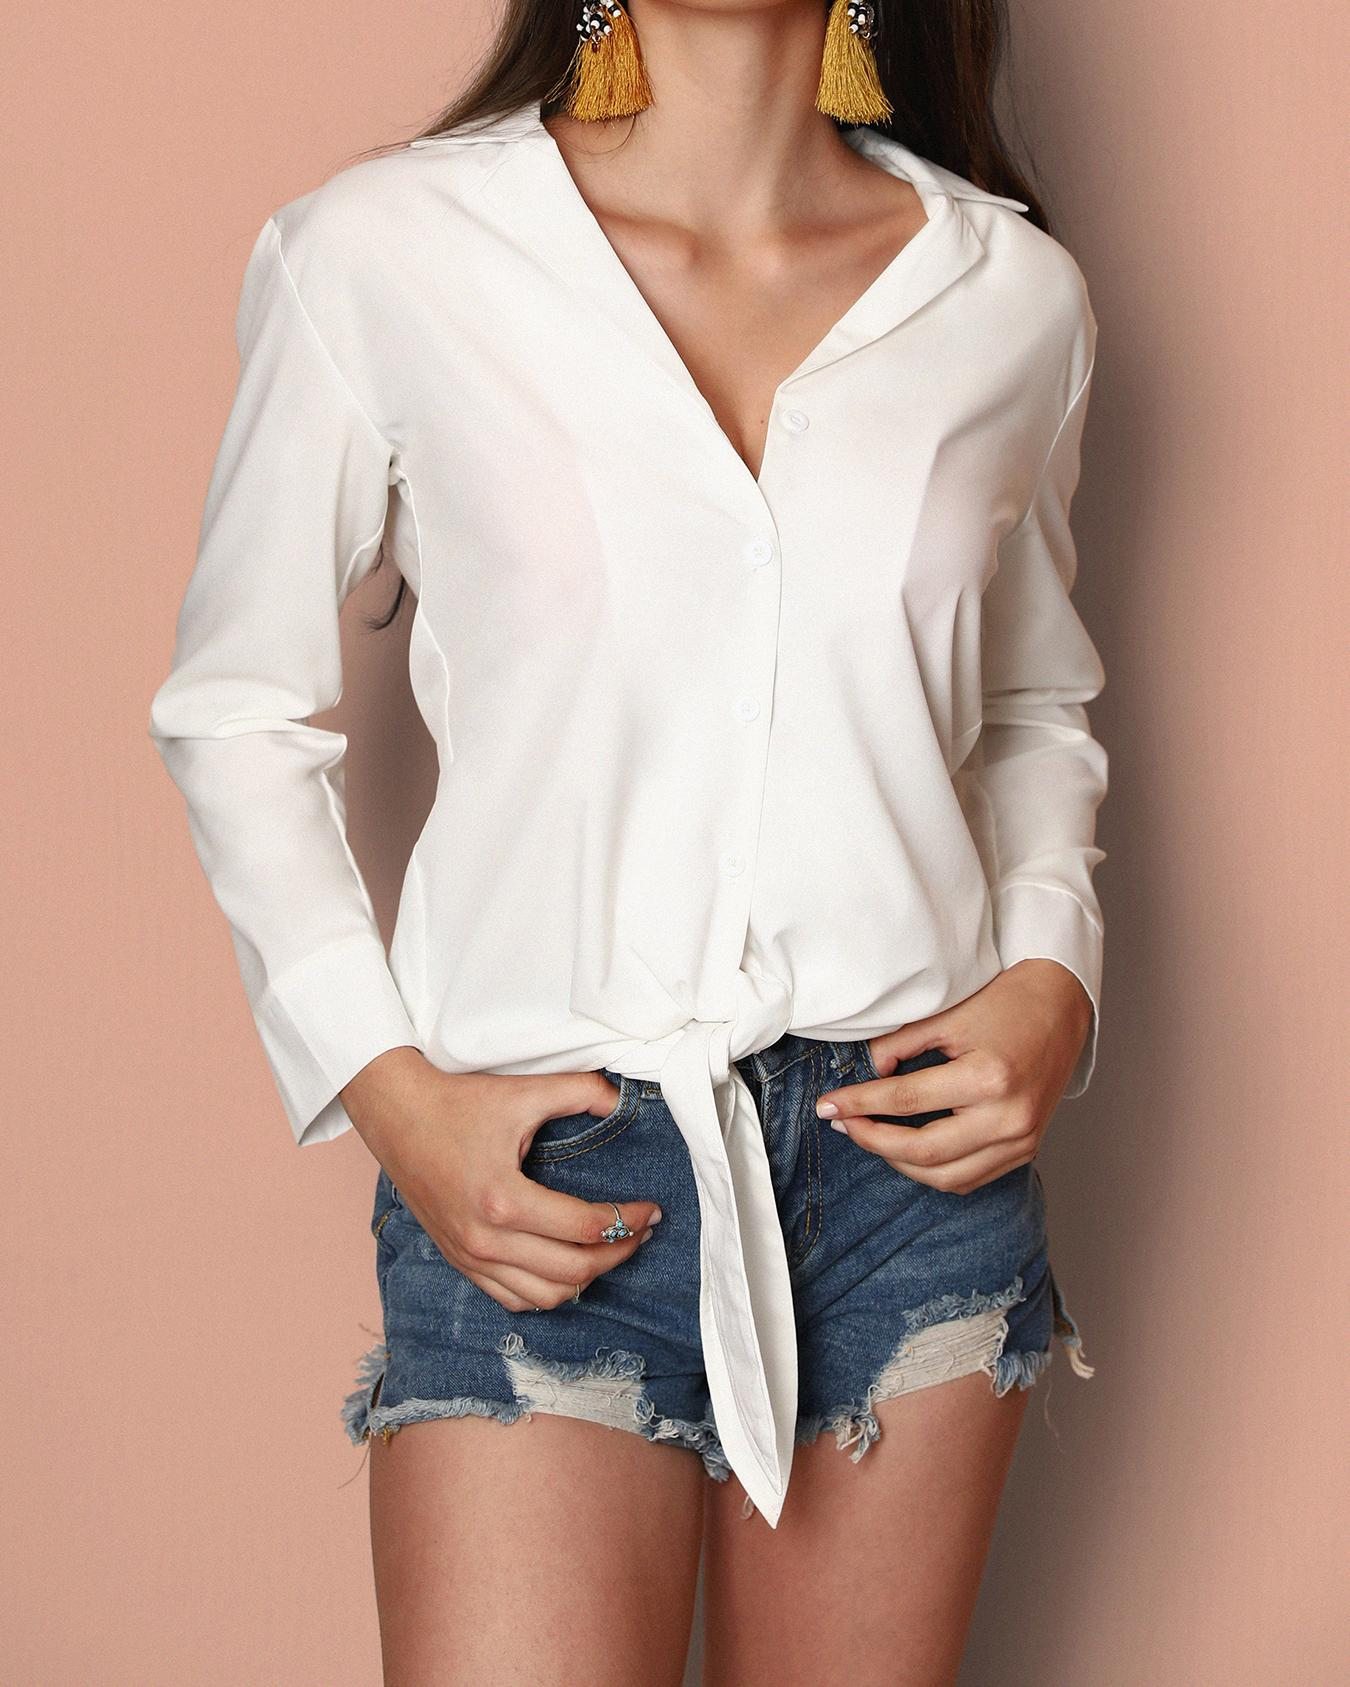 Stylish Bowtie Tied Solid Women's Blouse